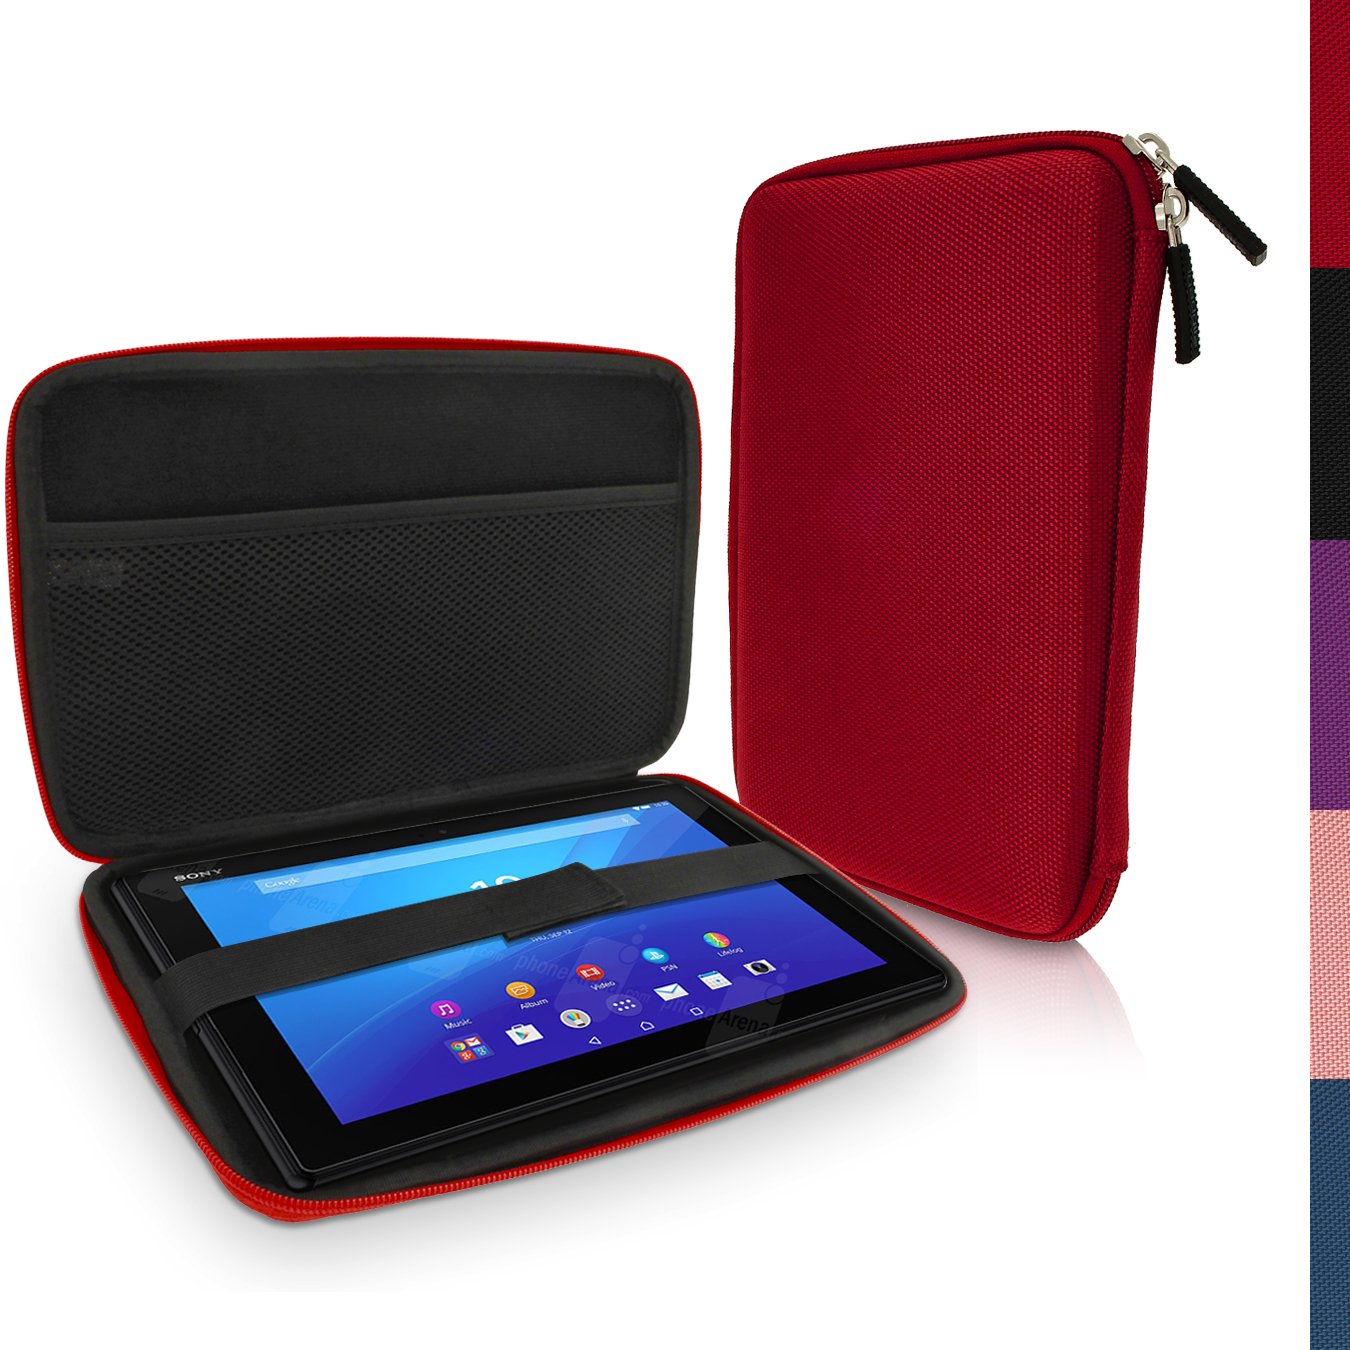 "iGadgitz Red EVA Hard Carry Case for Sony Xperia Z4 SGP771 10.1"" Tablet Bag"